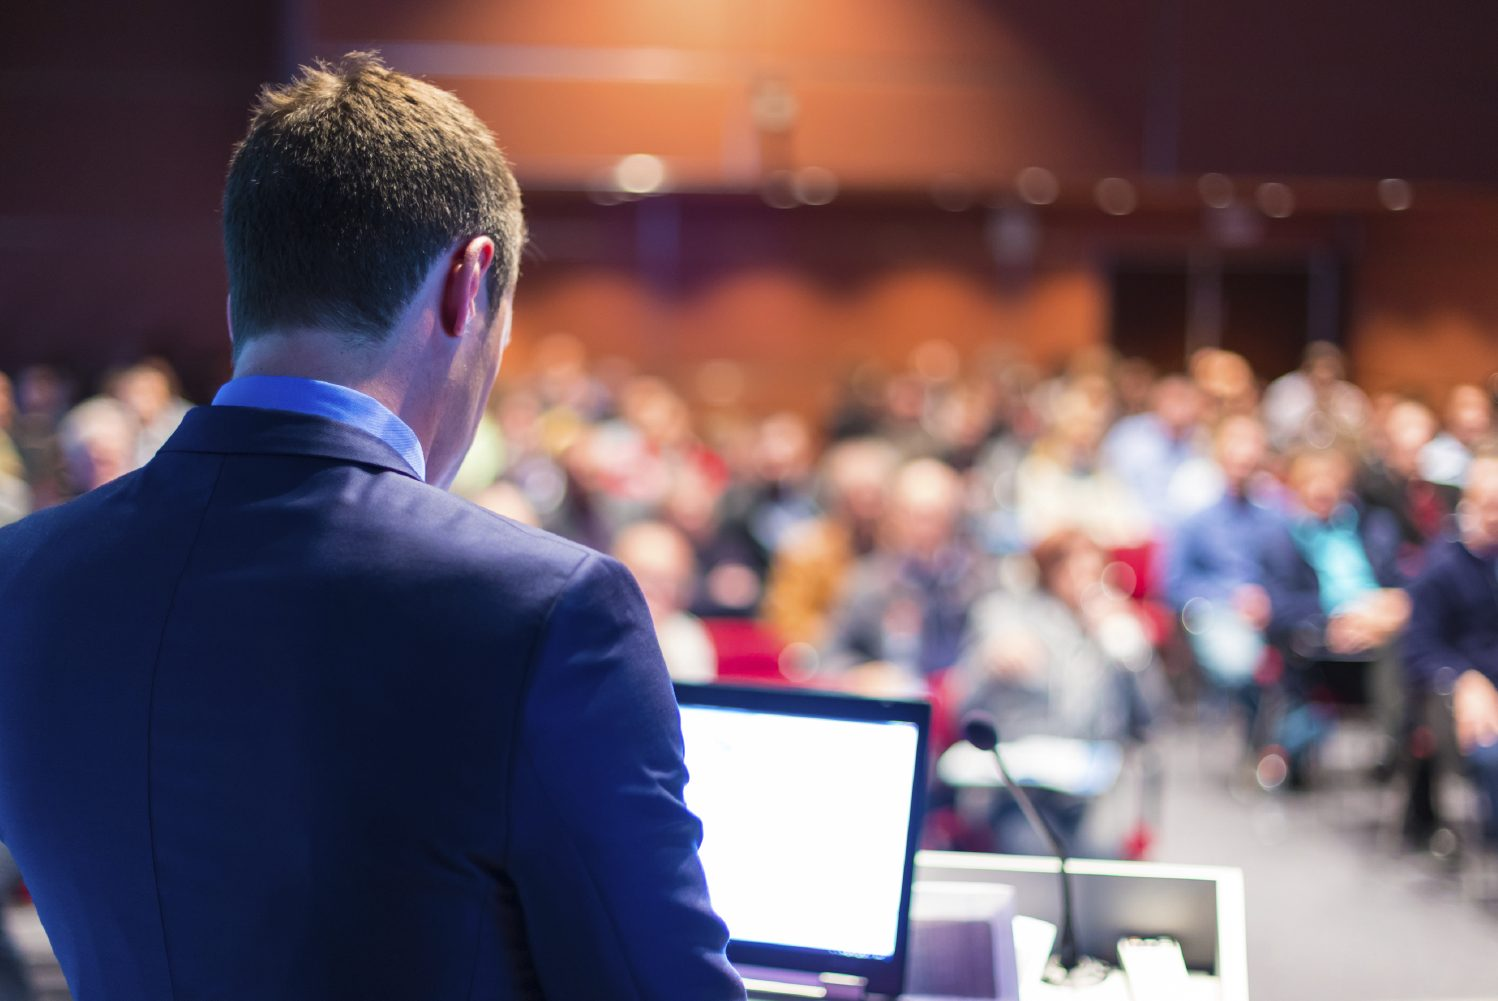 5 Dos and Don'ts for Planning a Corporate Town Hall